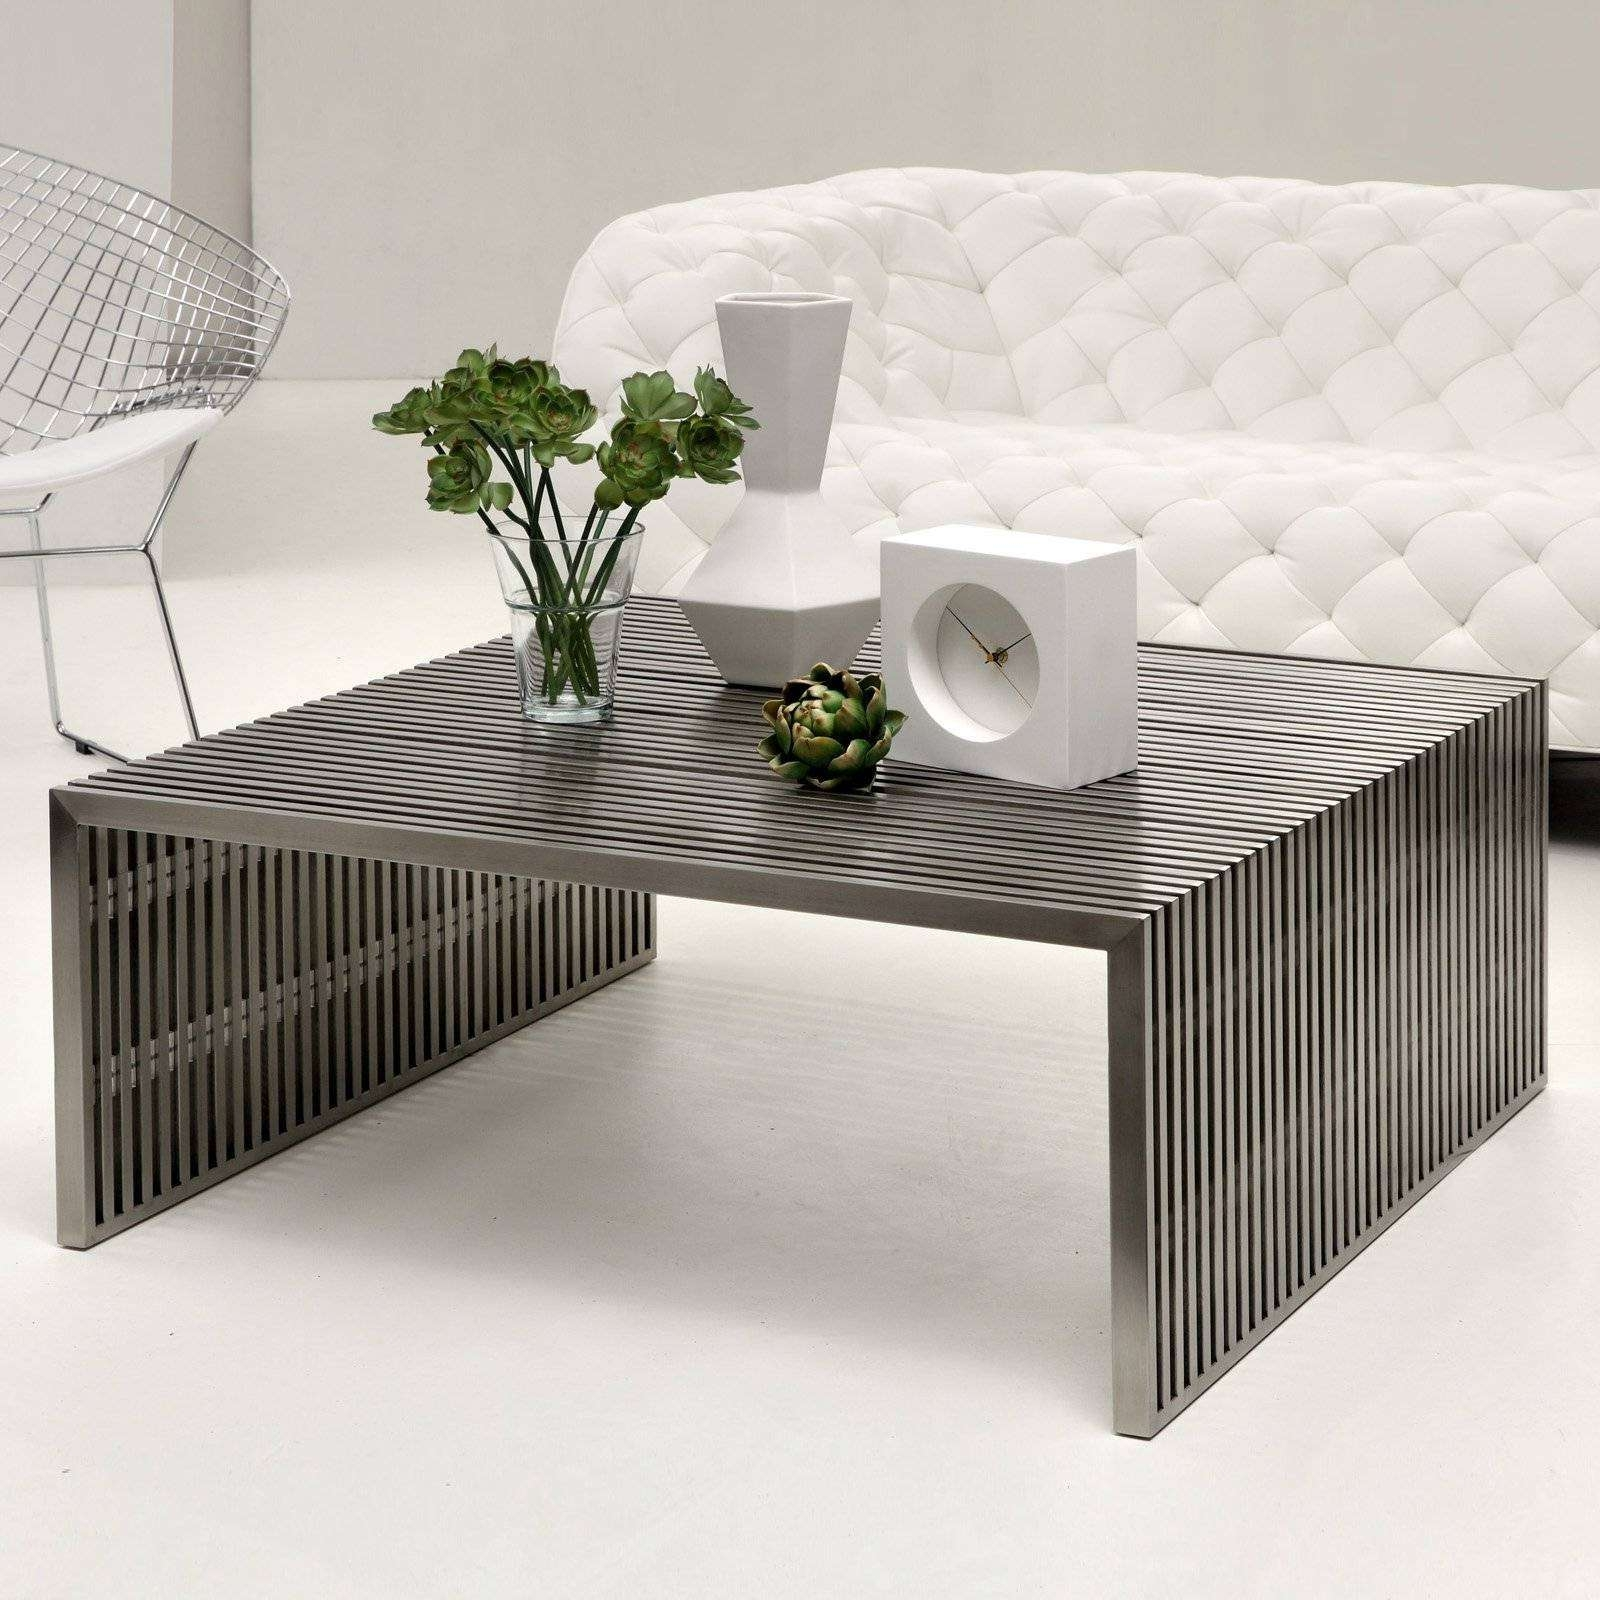 Coffee Table : Magnificent Low Square Teak Coffee Table Large In Latest Large Low Coffee Tables (View 5 of 20)